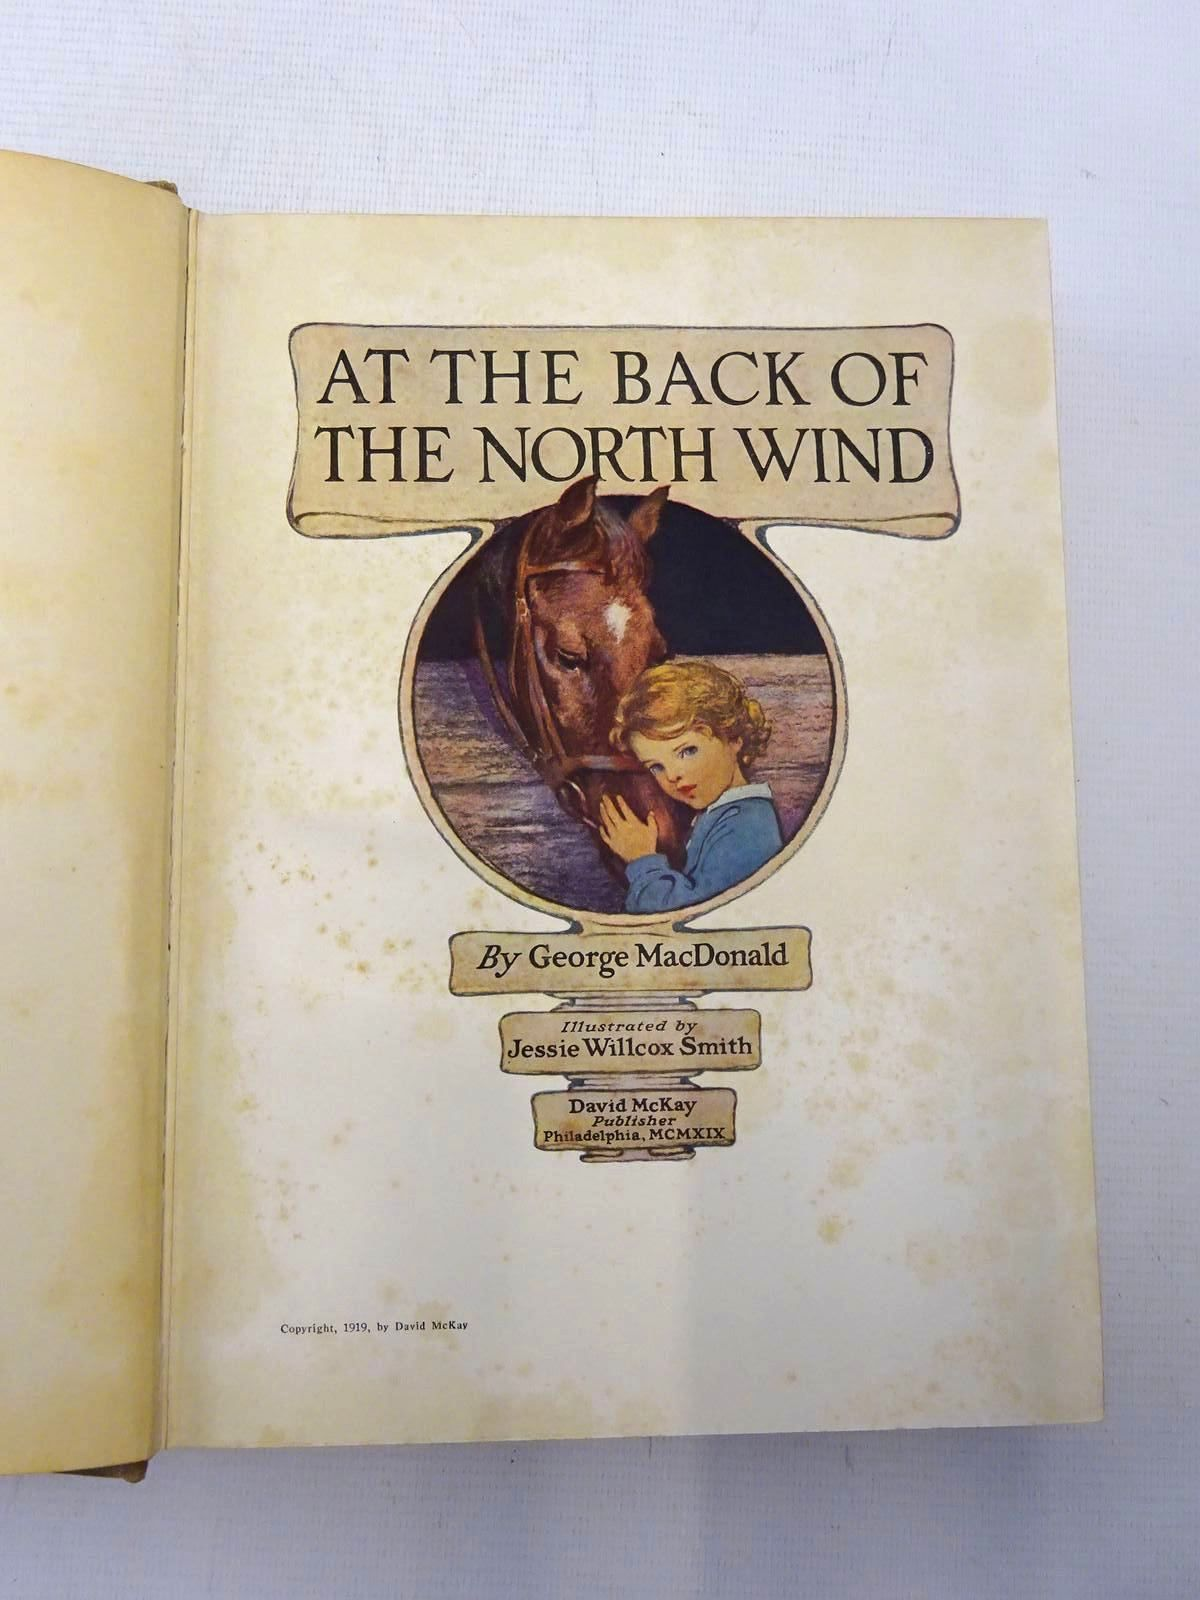 Photo of AT THE BACK OF THE NORTH WIND written by MacDonald, George illustrated by Smith, Jessie Willcox published by David McKay Company (STOCK CODE: 2126376)  for sale by Stella & Rose's Books